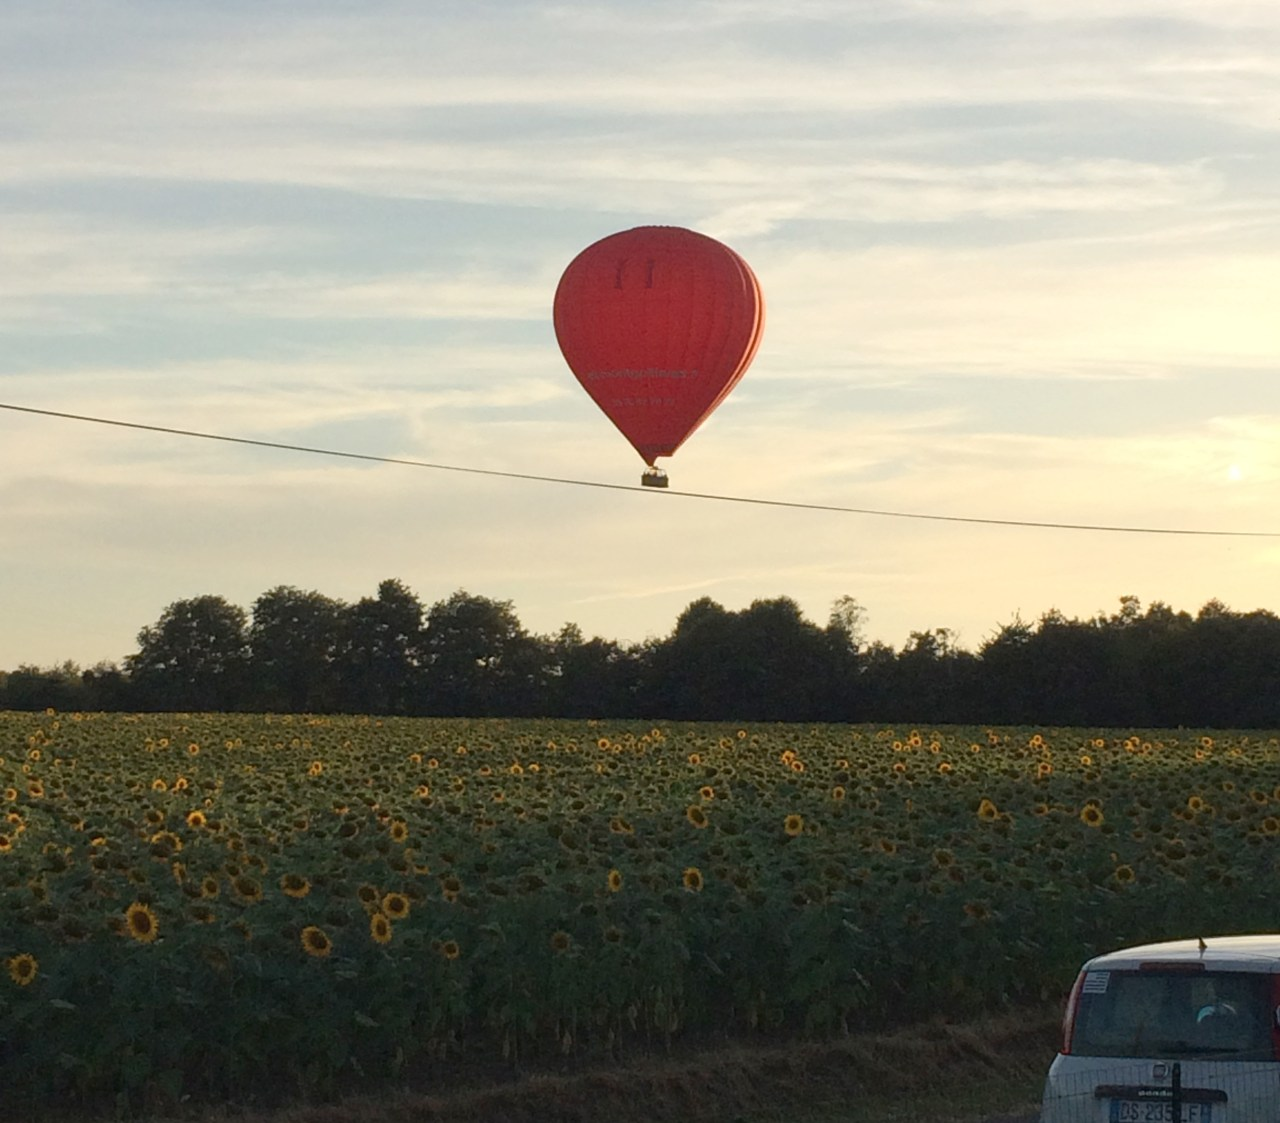 It's Not a Party Without Unexpected Hot Air Balloons